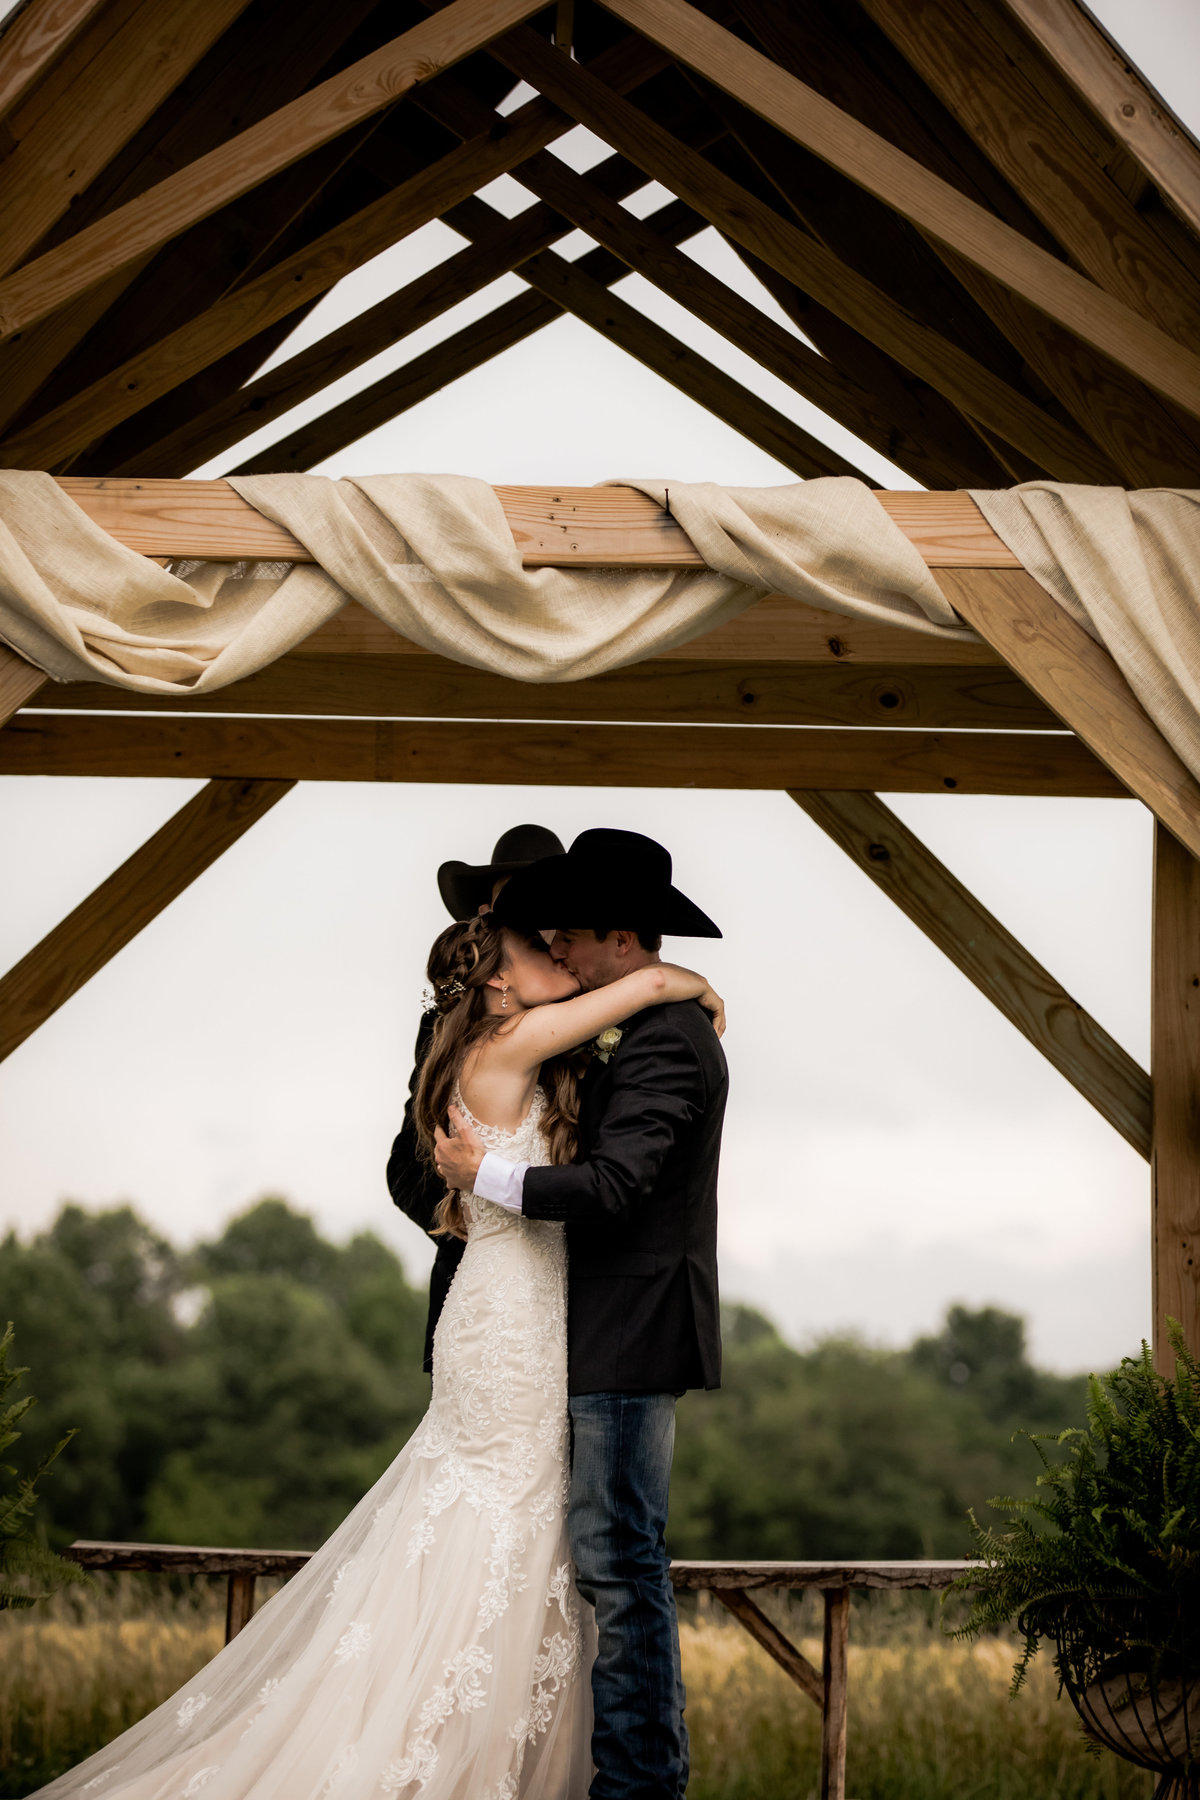 Nsshville Bride - Nashville Brides - The Hayloft Weddings - Tennessee Brides - Kentucky Brides - Southern Brides - Cowboys Wife - Cowboys Bride - Ranch Weddings - Cowboys and Belles110